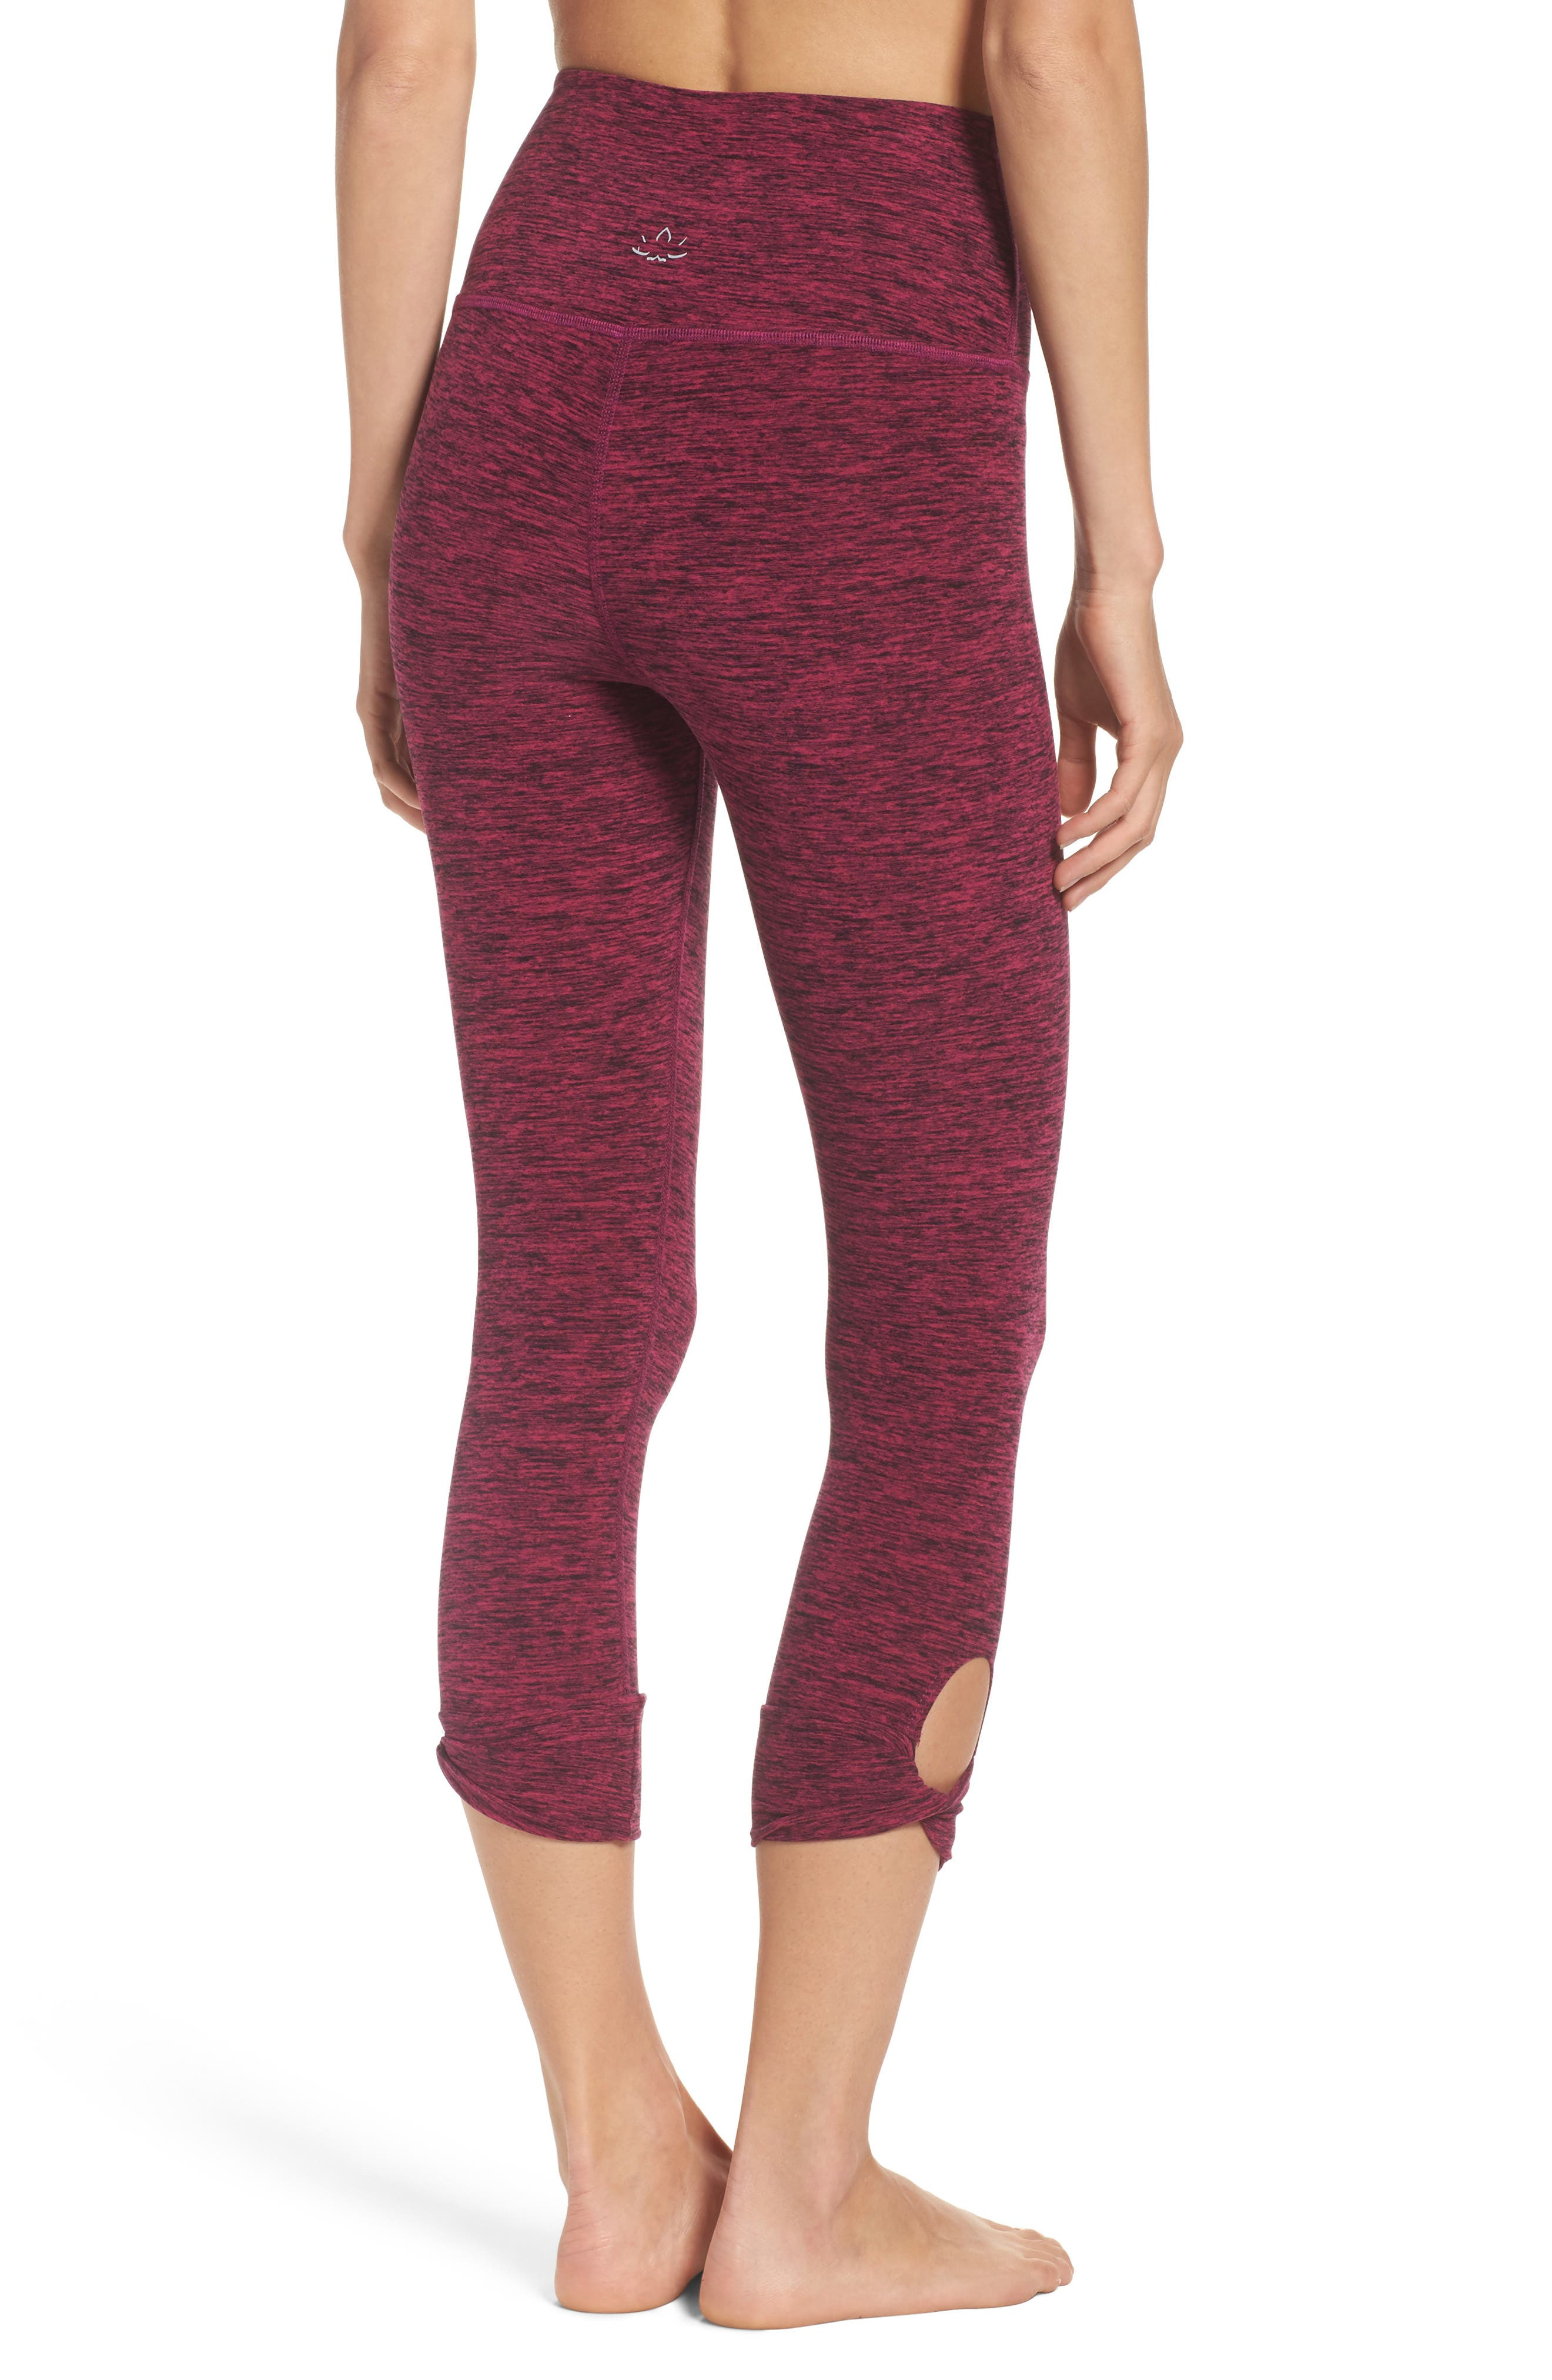 Beyond Yoga Twist & Shout High Waist Capris